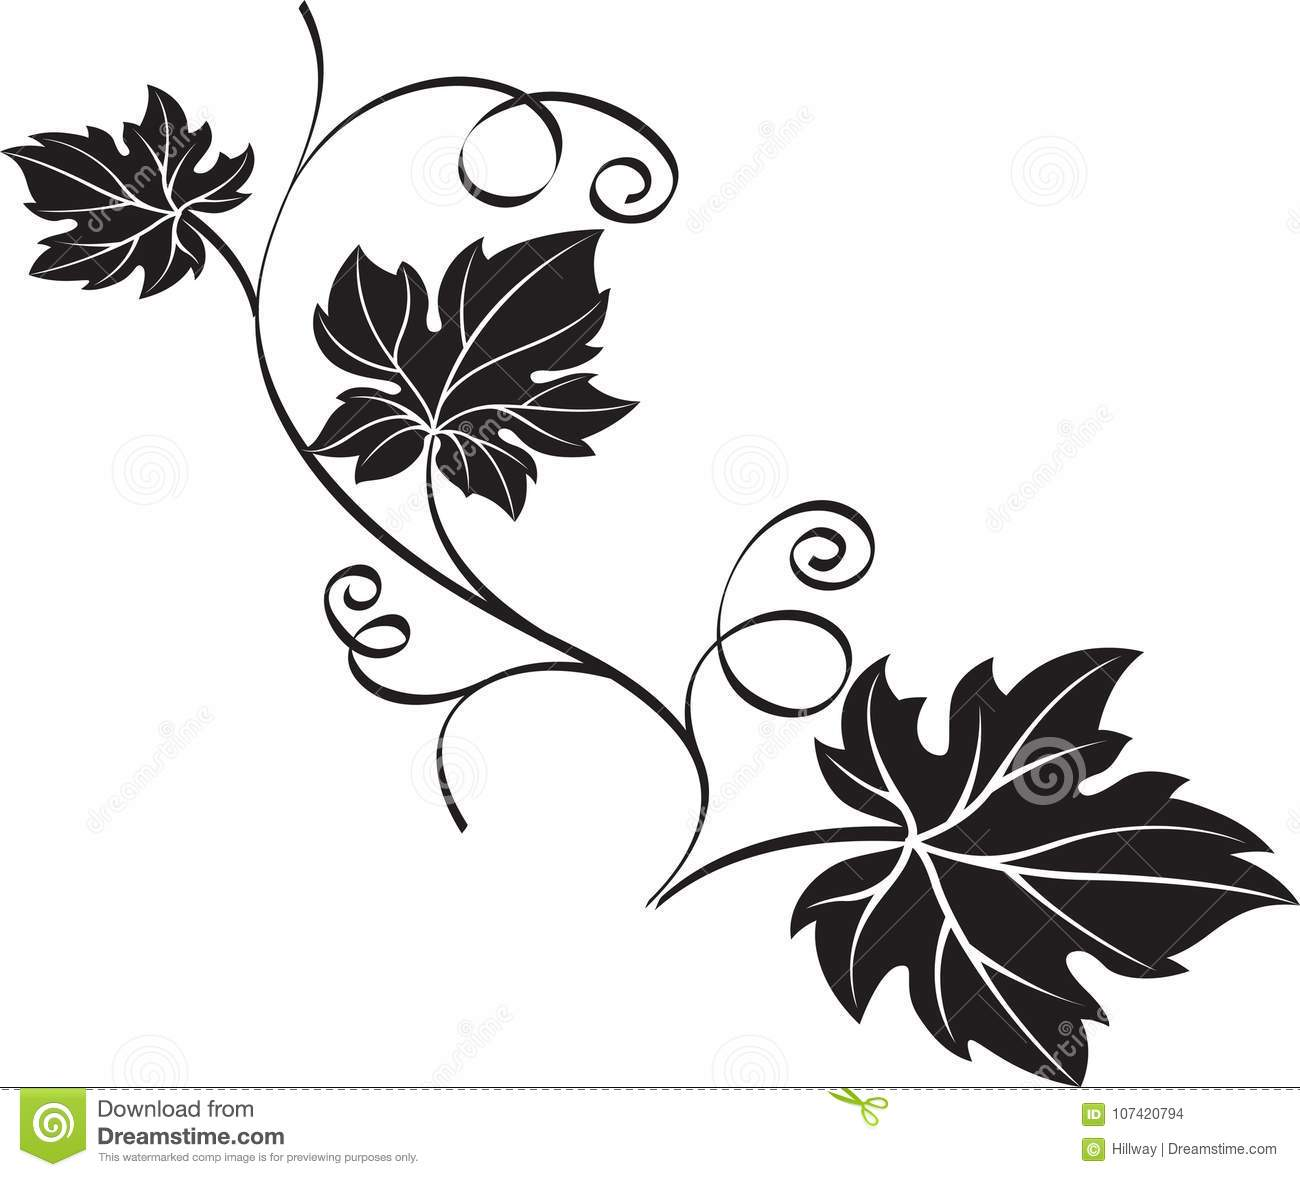 Black Grape Branch With Leaves On White Background Stock Vector Illustration Of Design Fruit 107420794